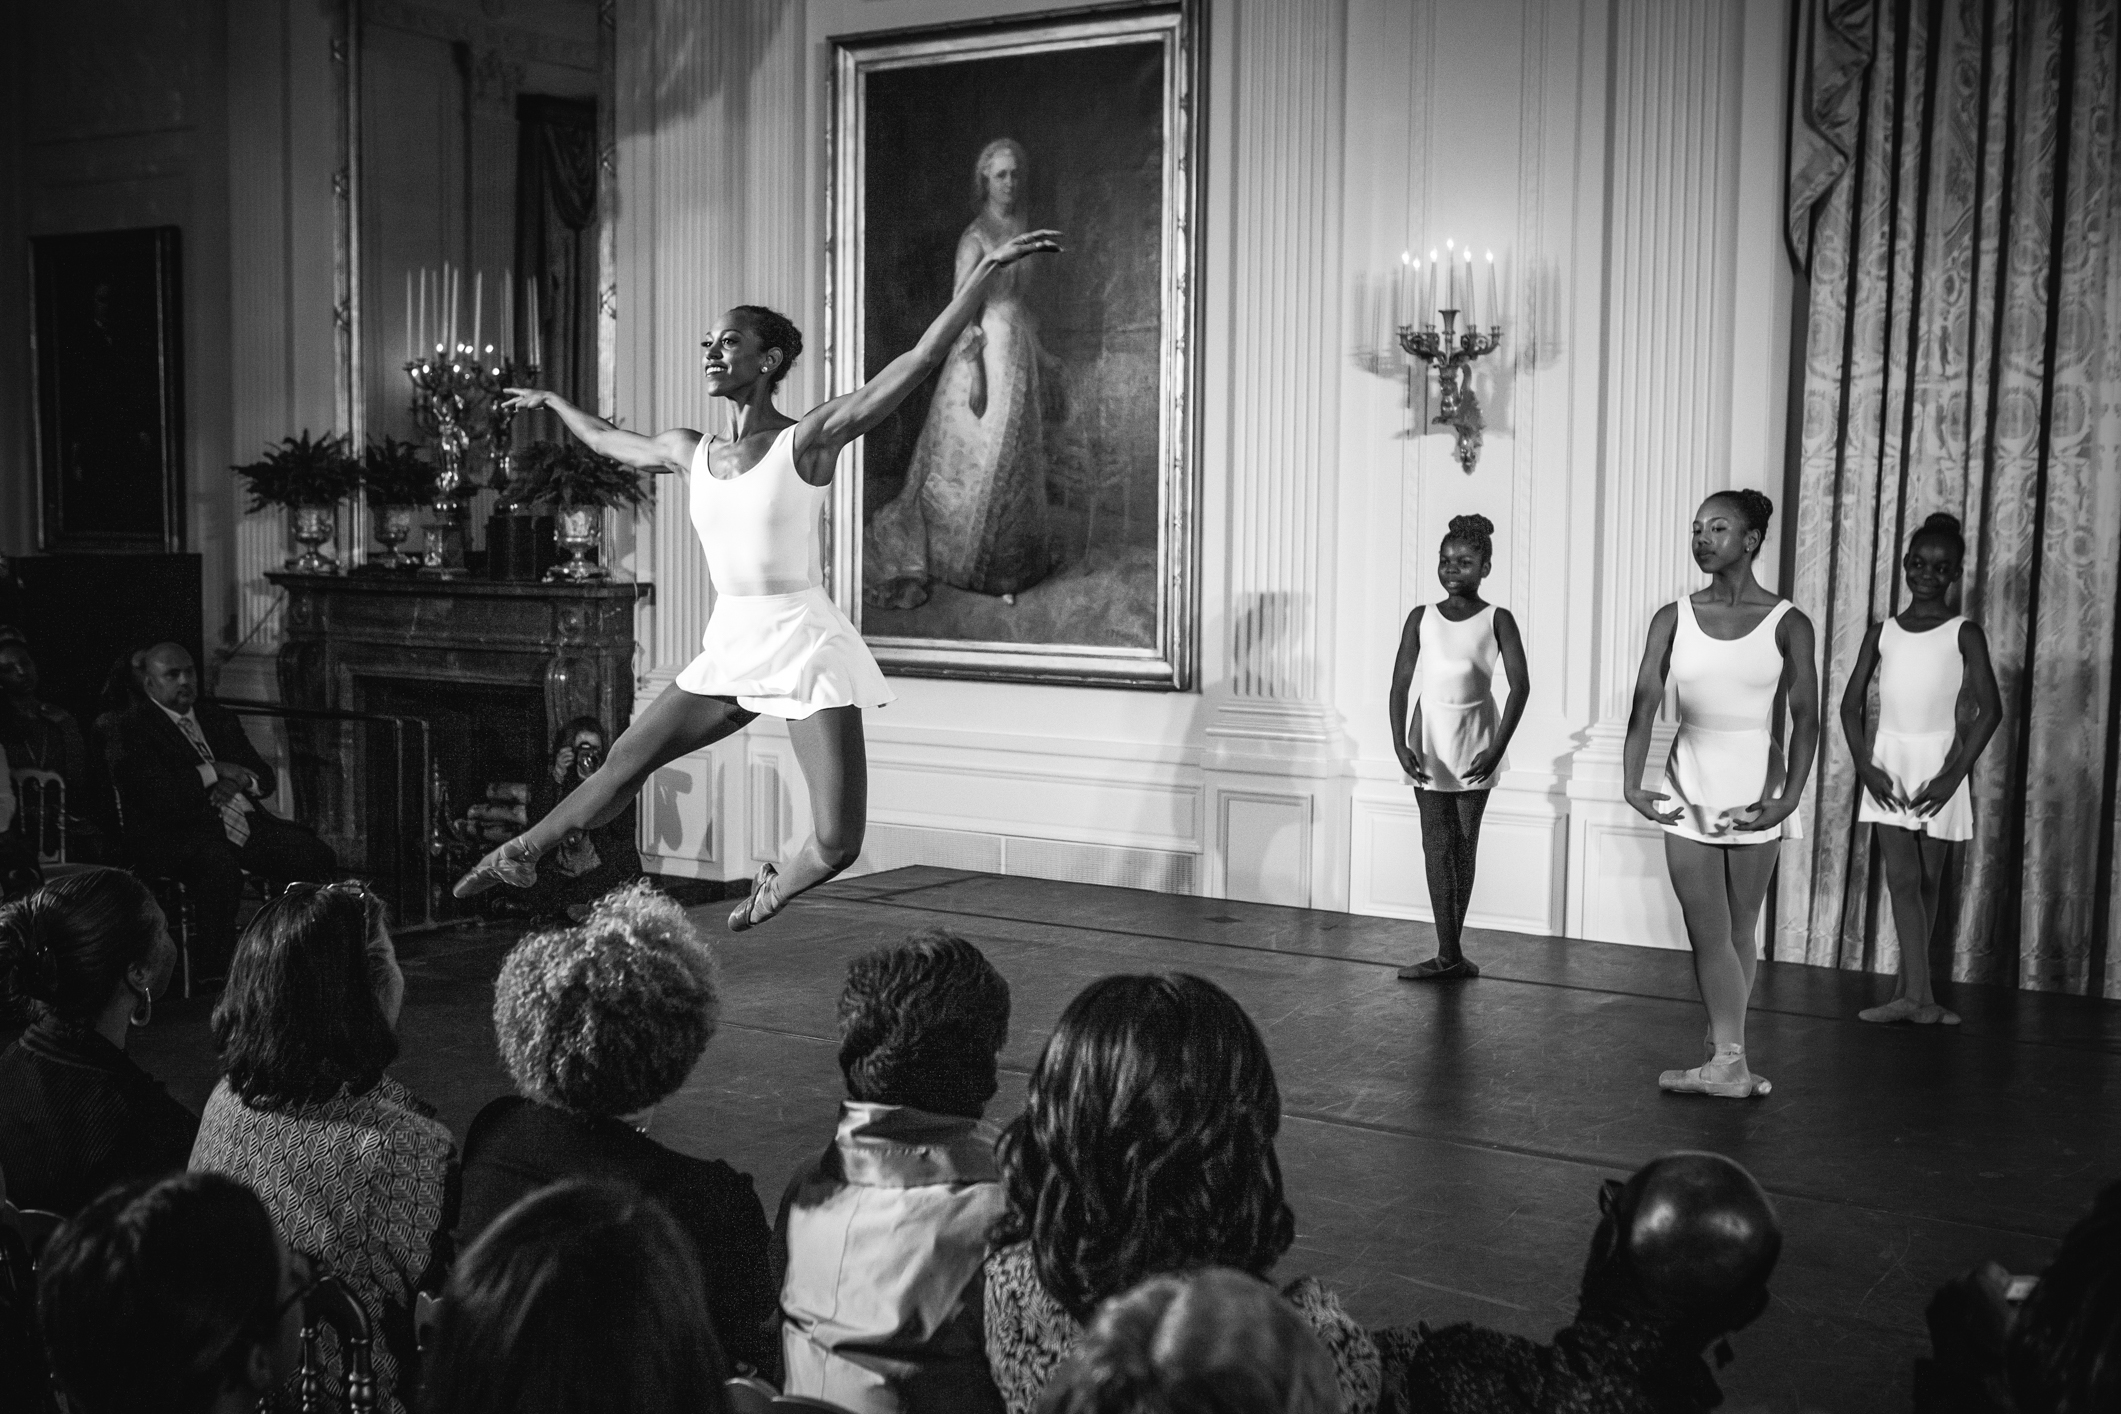 FIRST LADYBLACK HISTORY MONTH DANCE PERFORMANCE